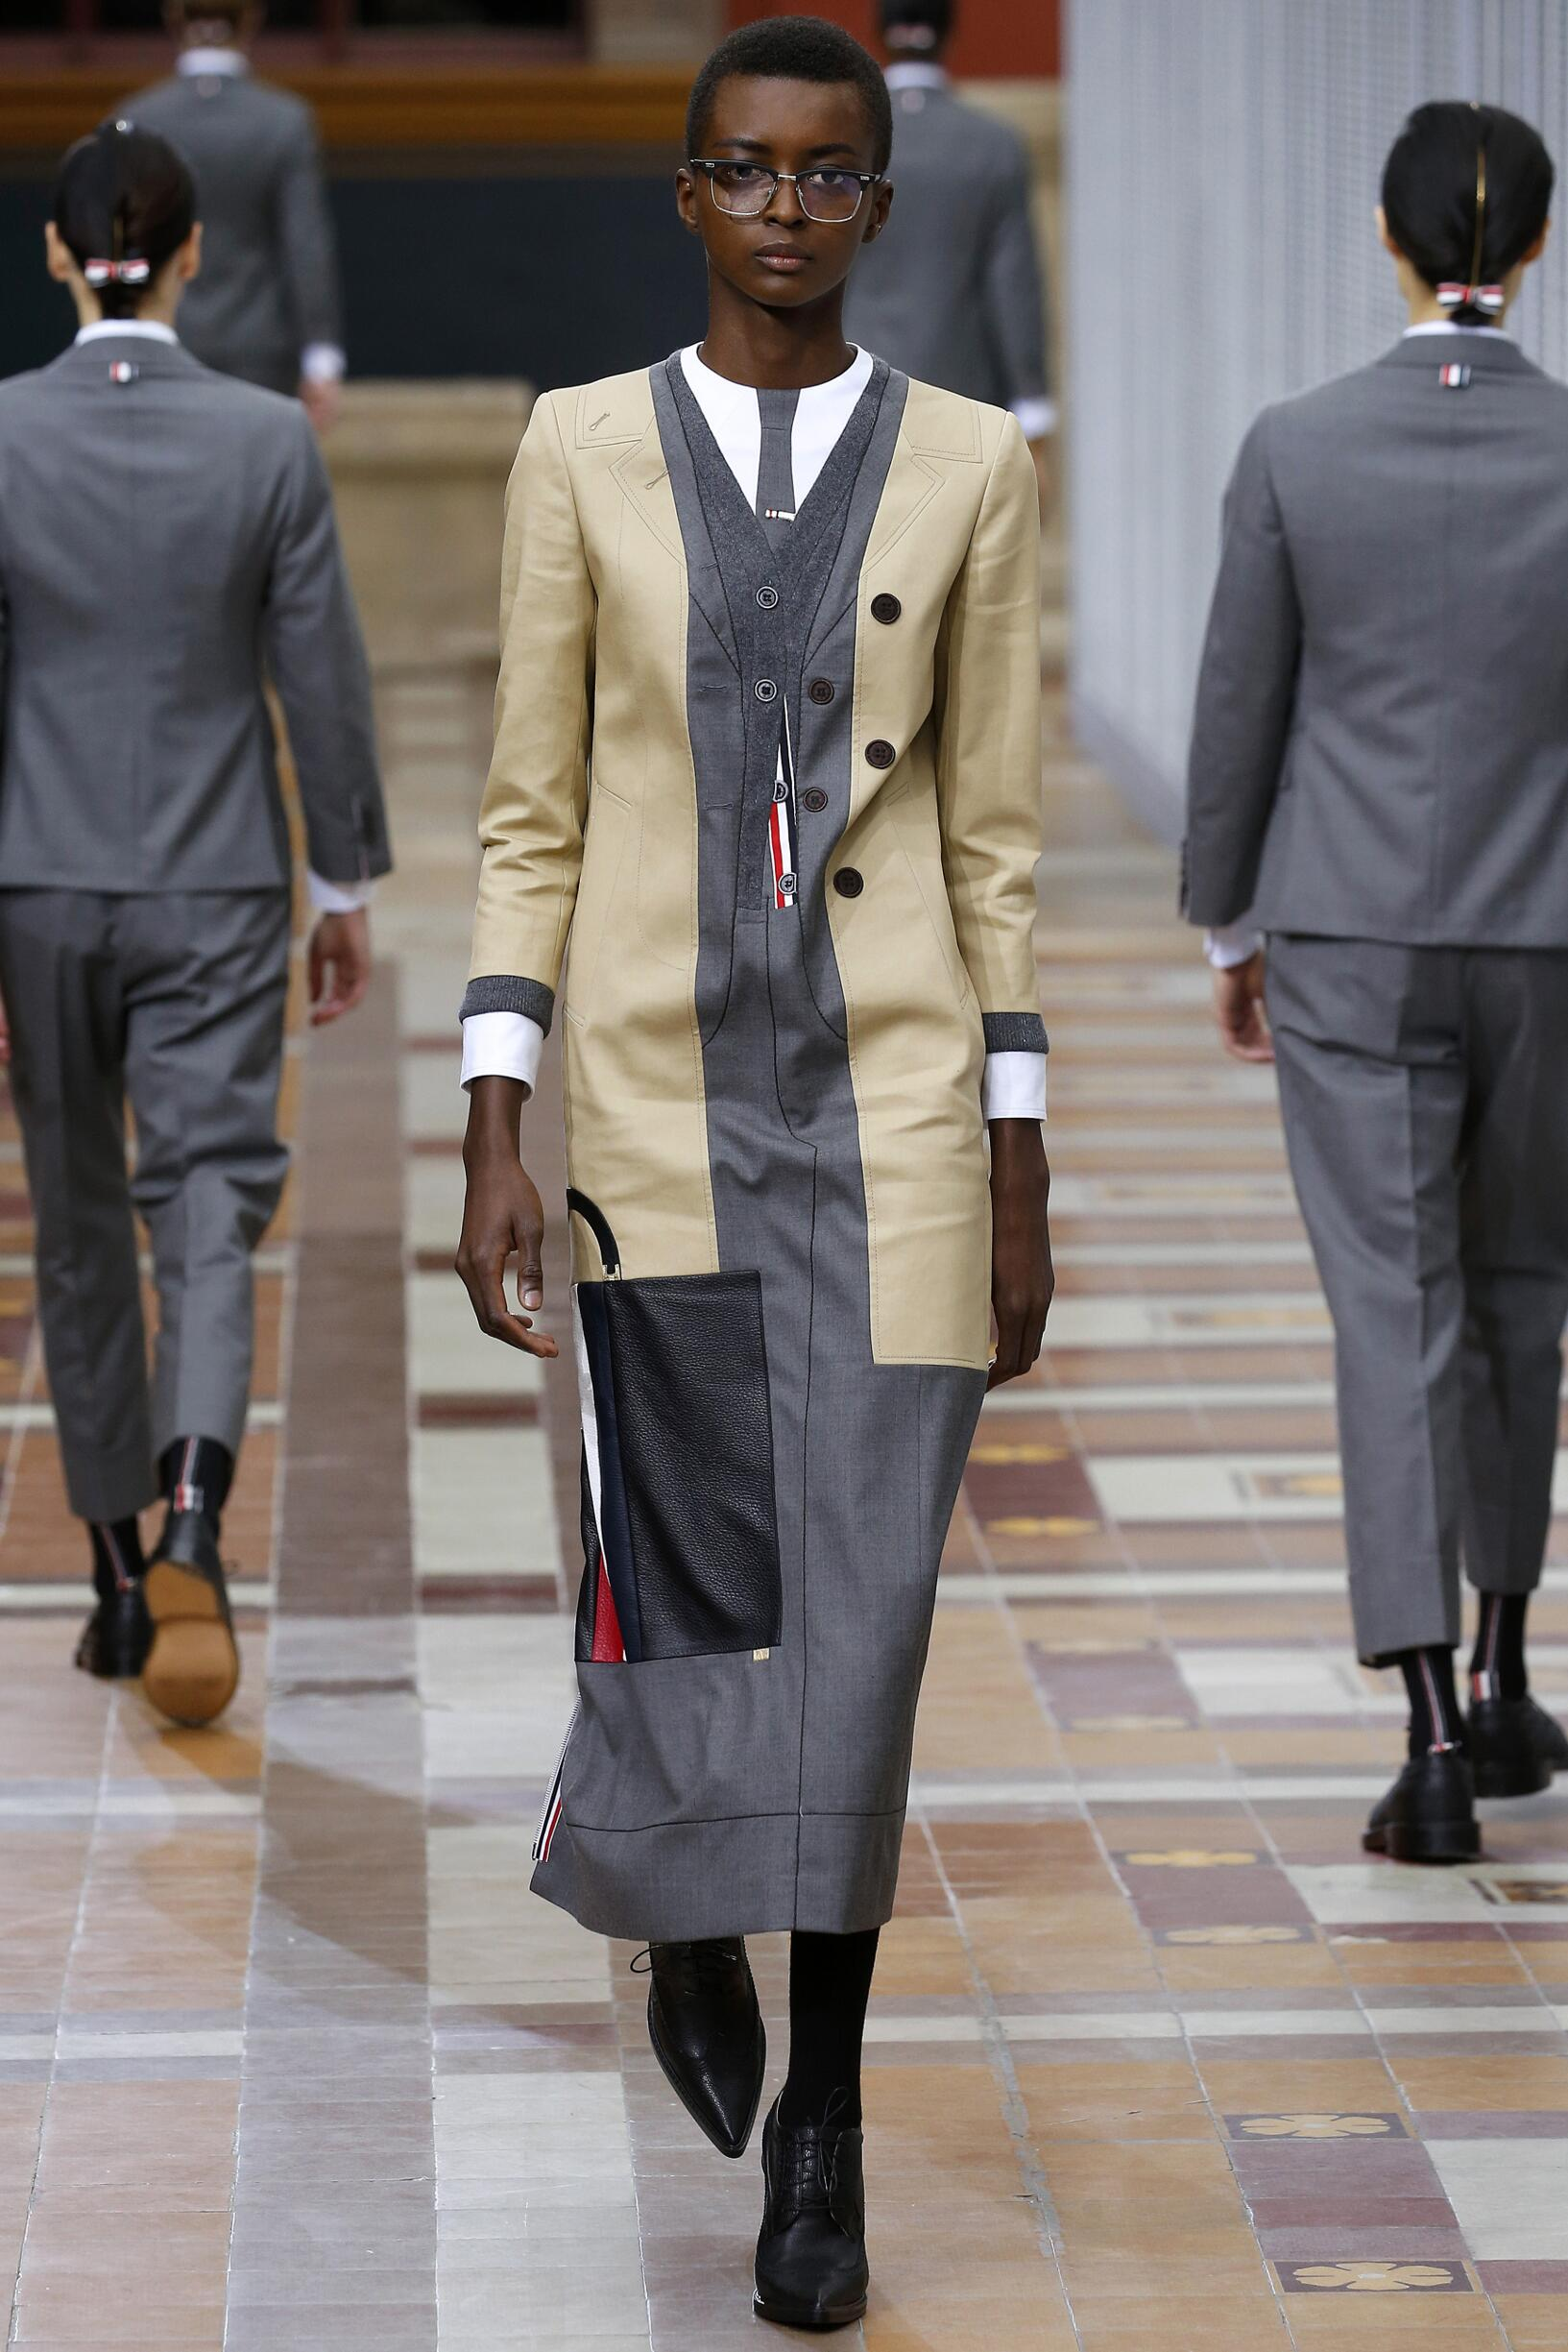 Thom Browne Womenswear Collection Trends